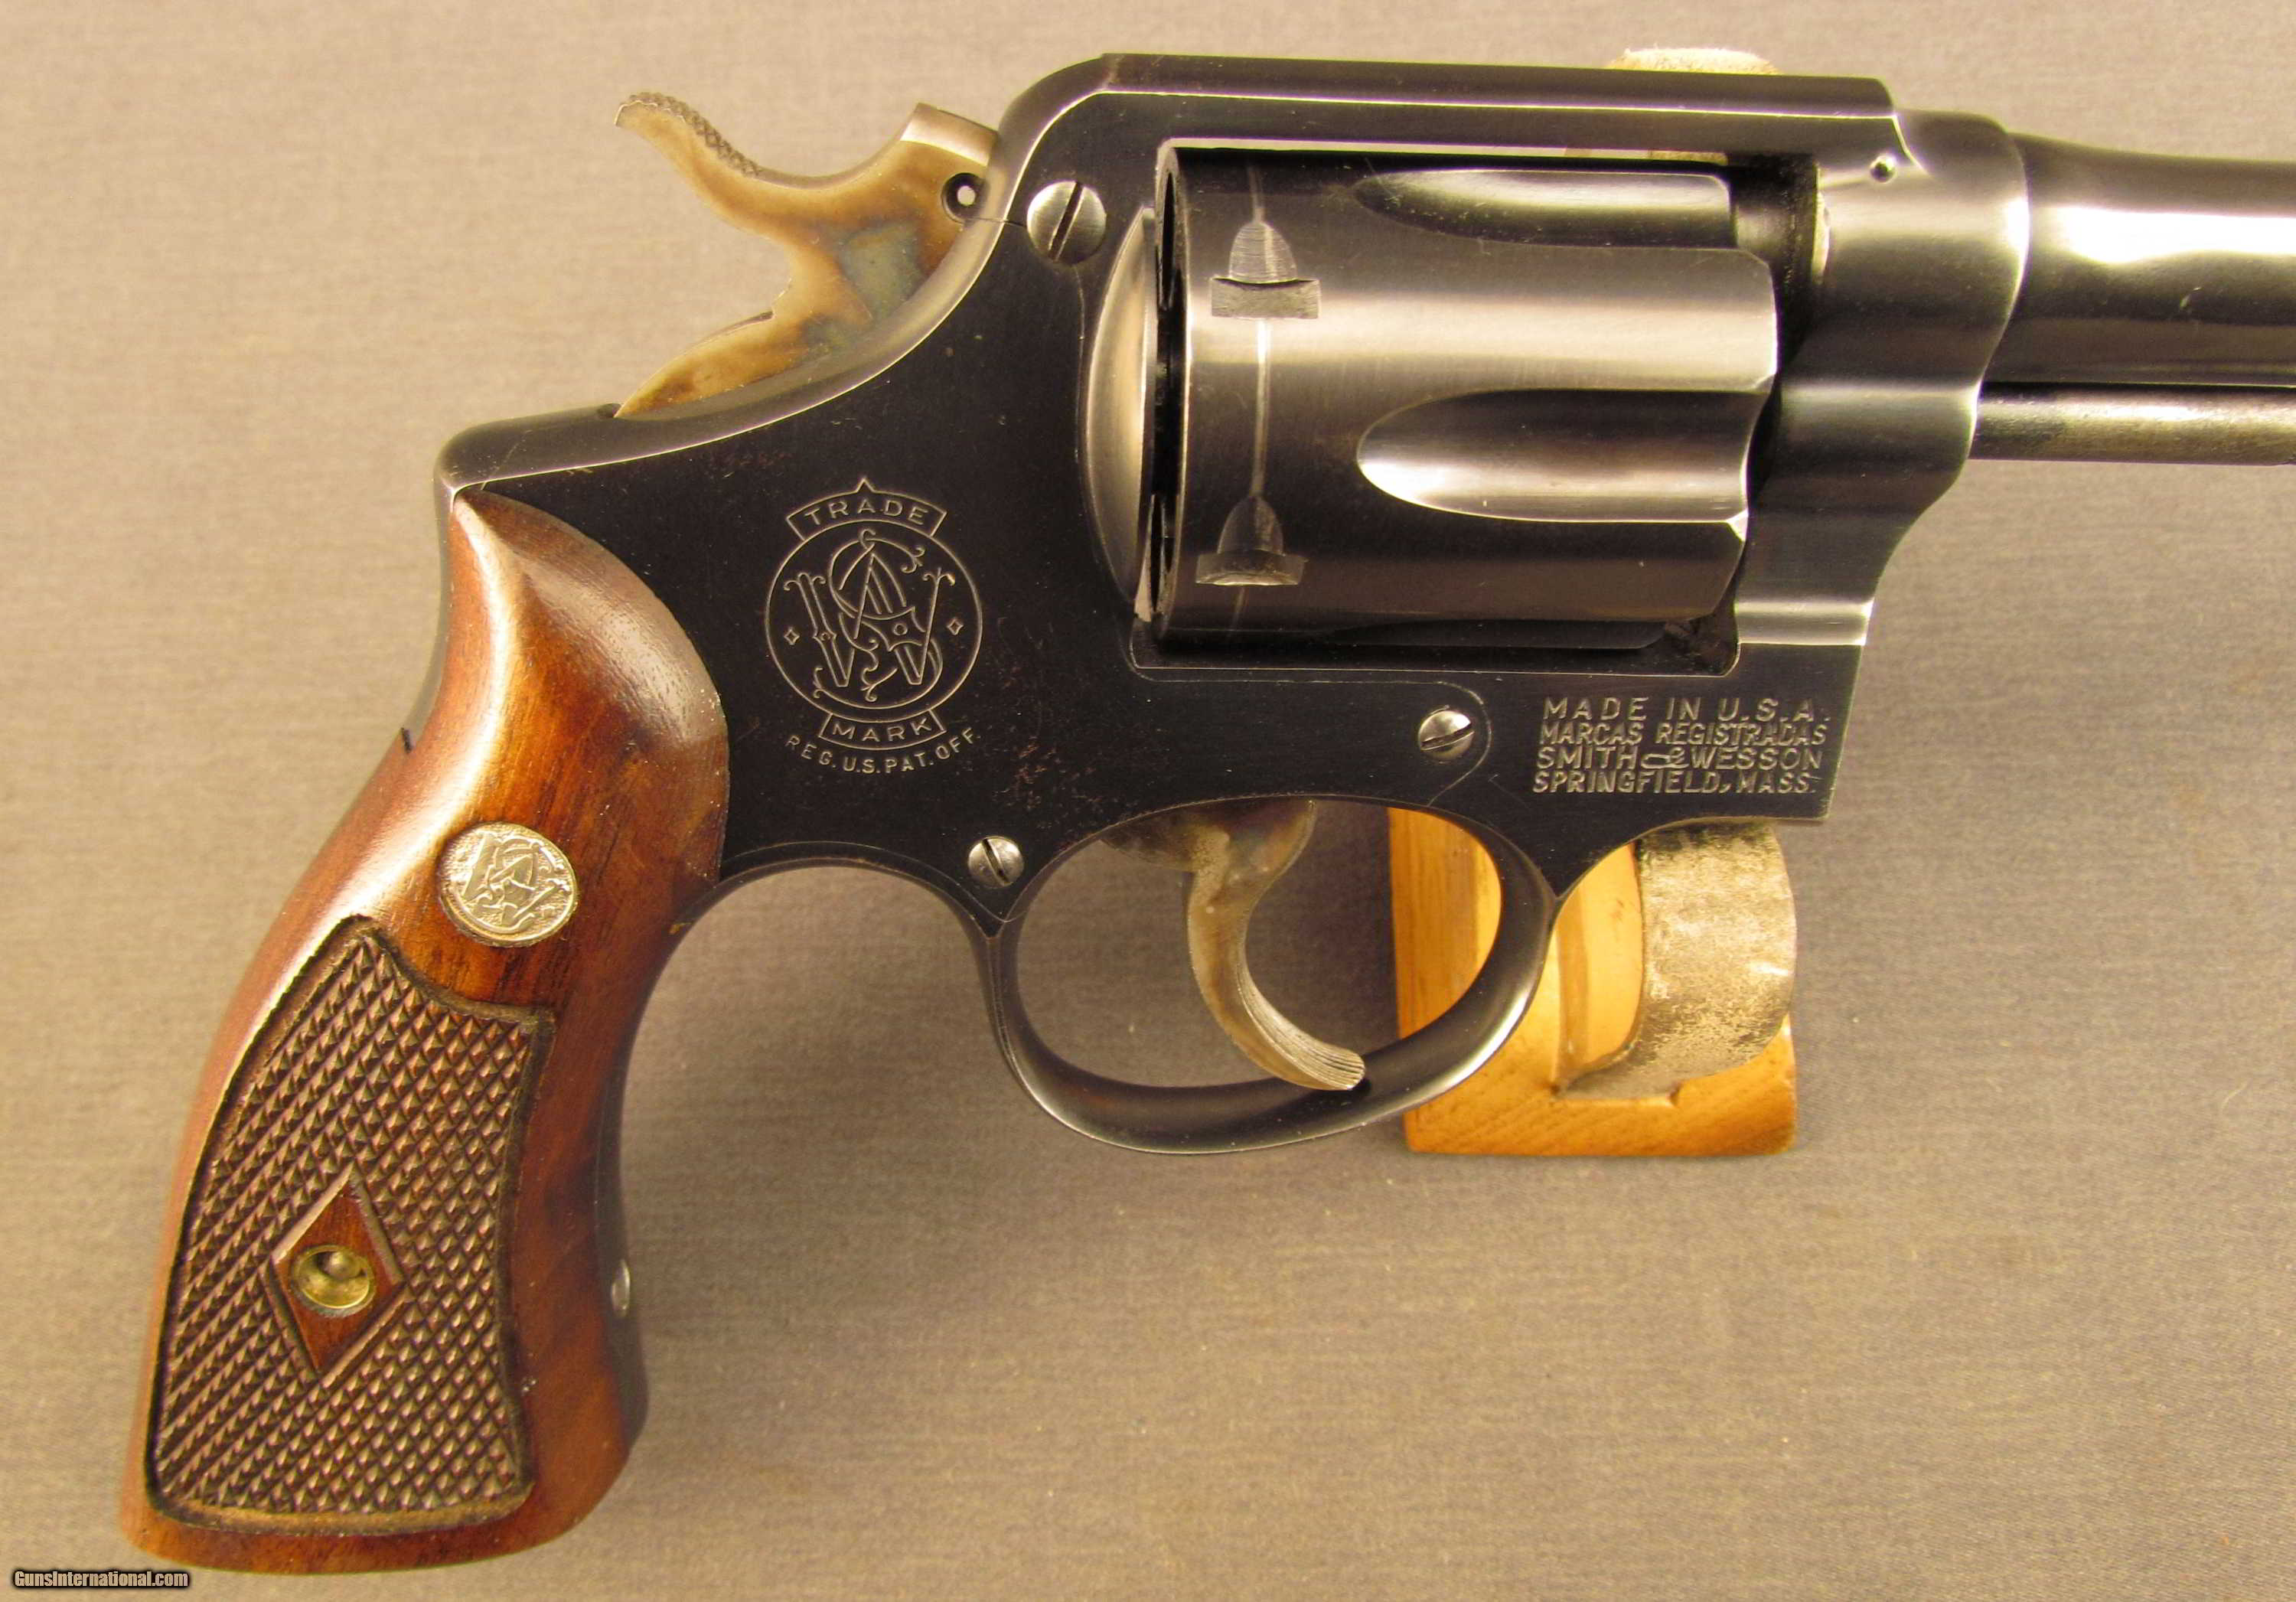 Asombroso Smith And Wesson J Marco 357 Molde - Ideas Personalizadas ...